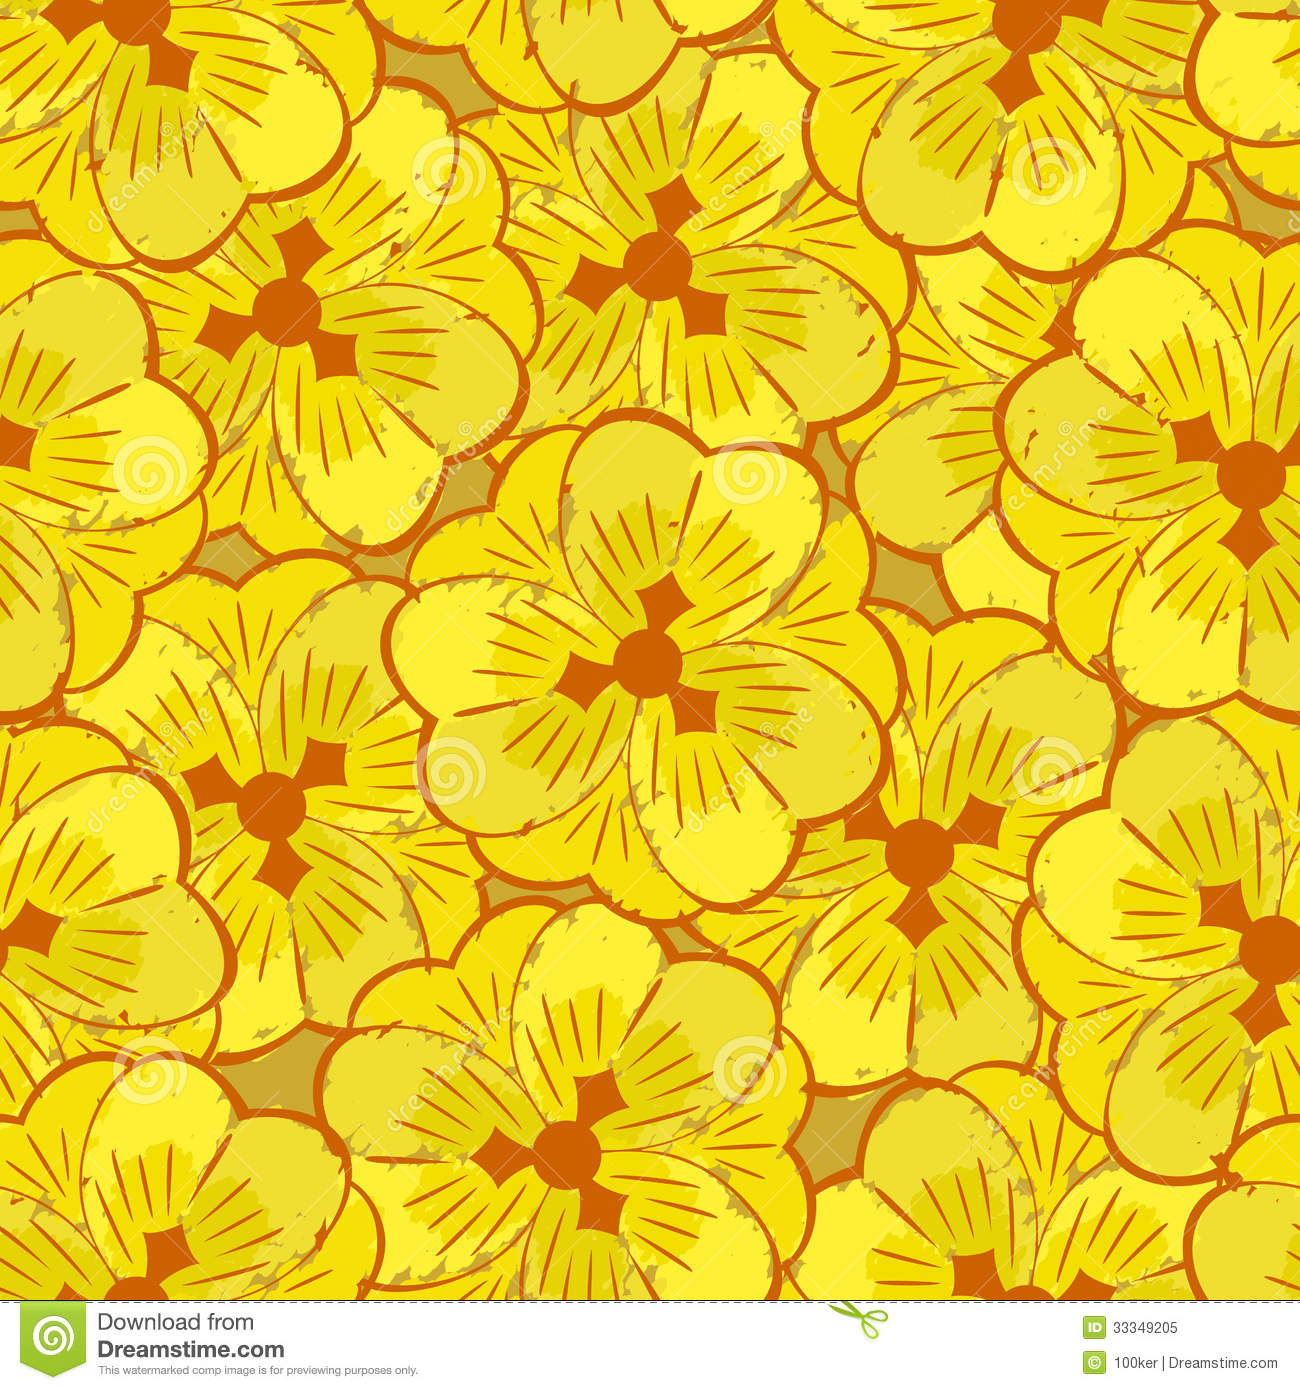 yellow floral pattern - photo #45